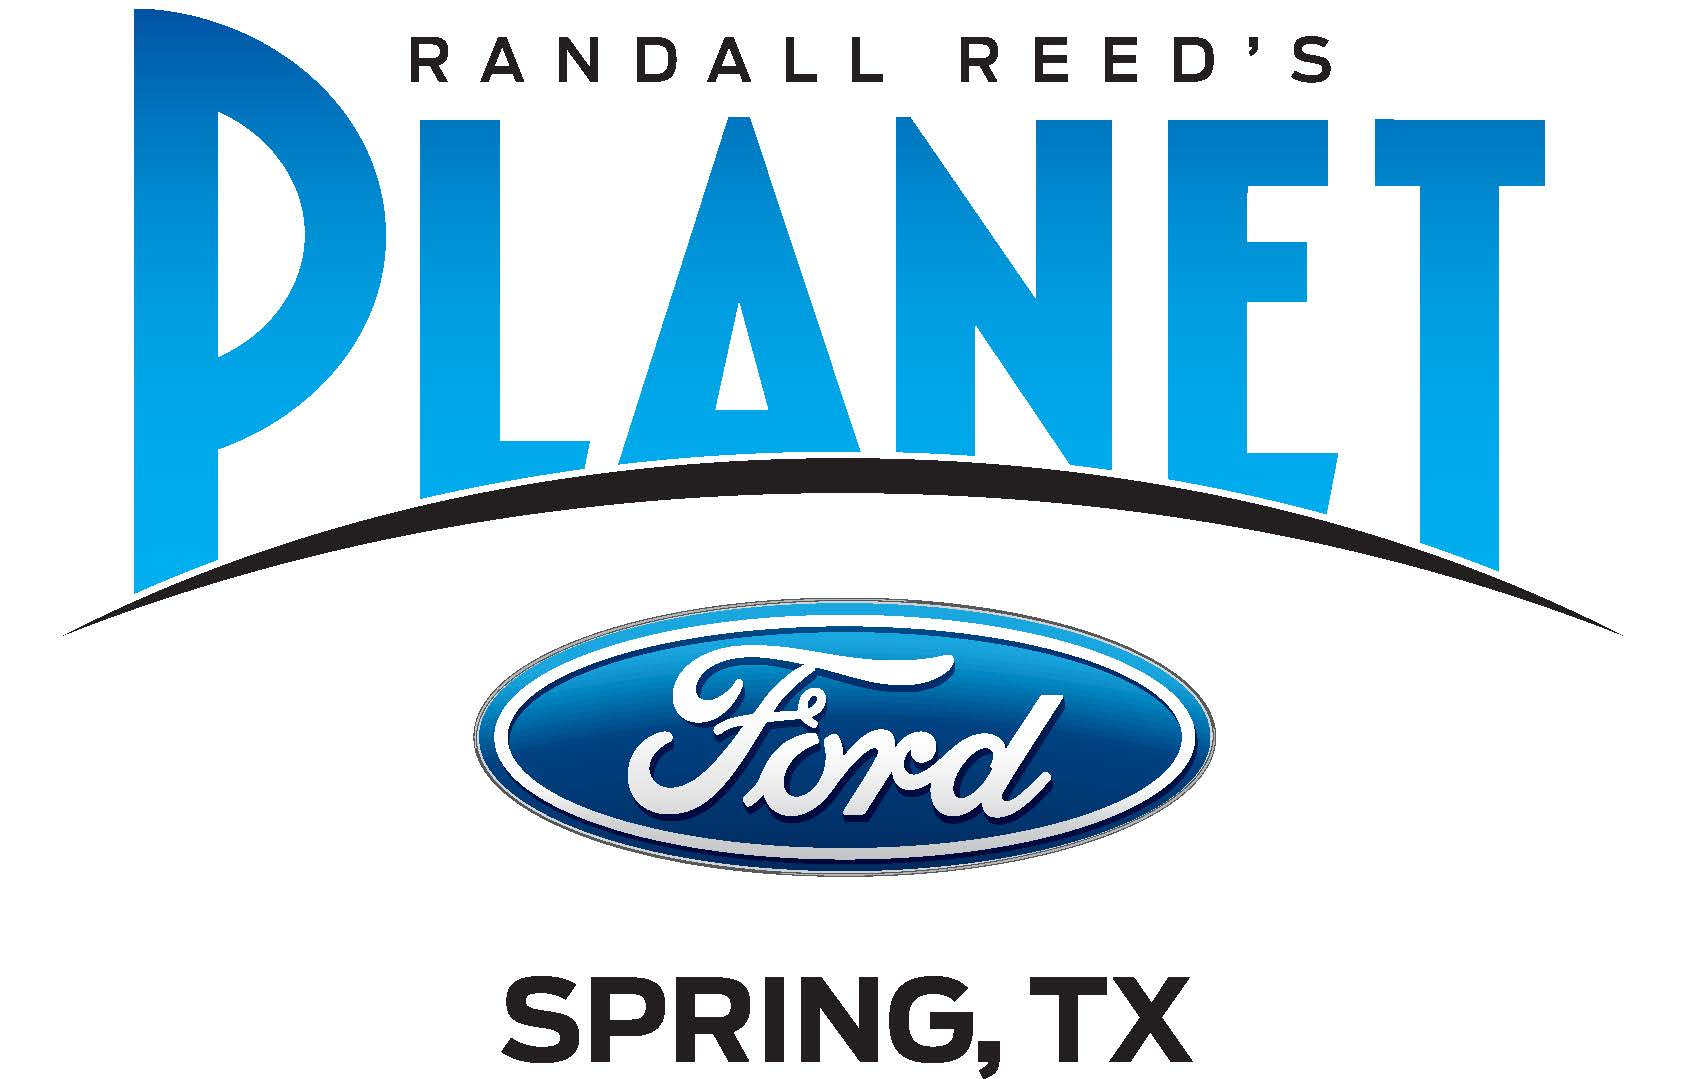 Planet Ford SPRING